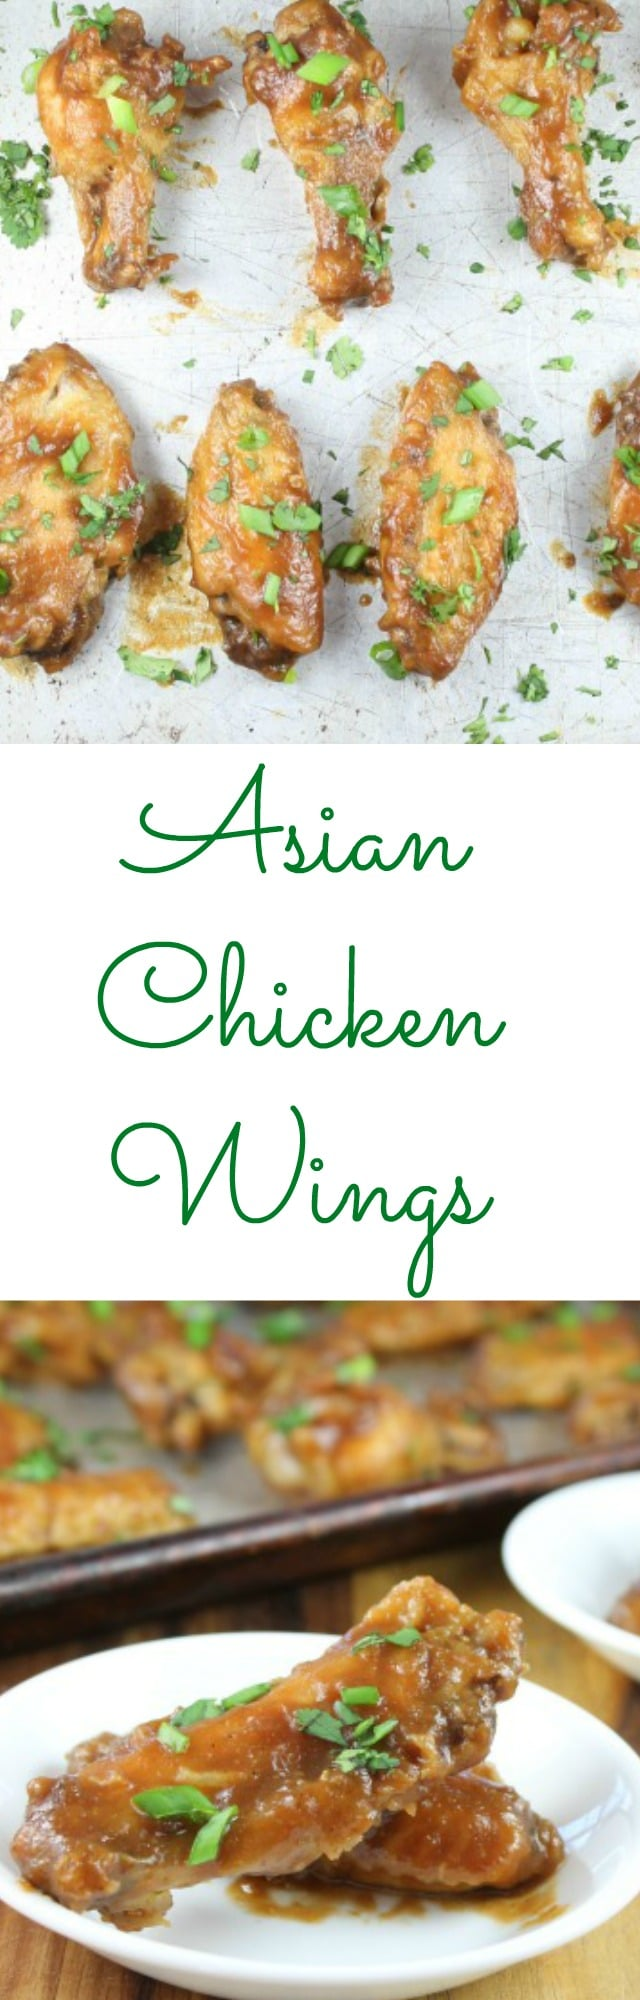 Asian Chicken Wings Recipe ~ The perfect game day appetizer! Found at MissintheKitchen.com